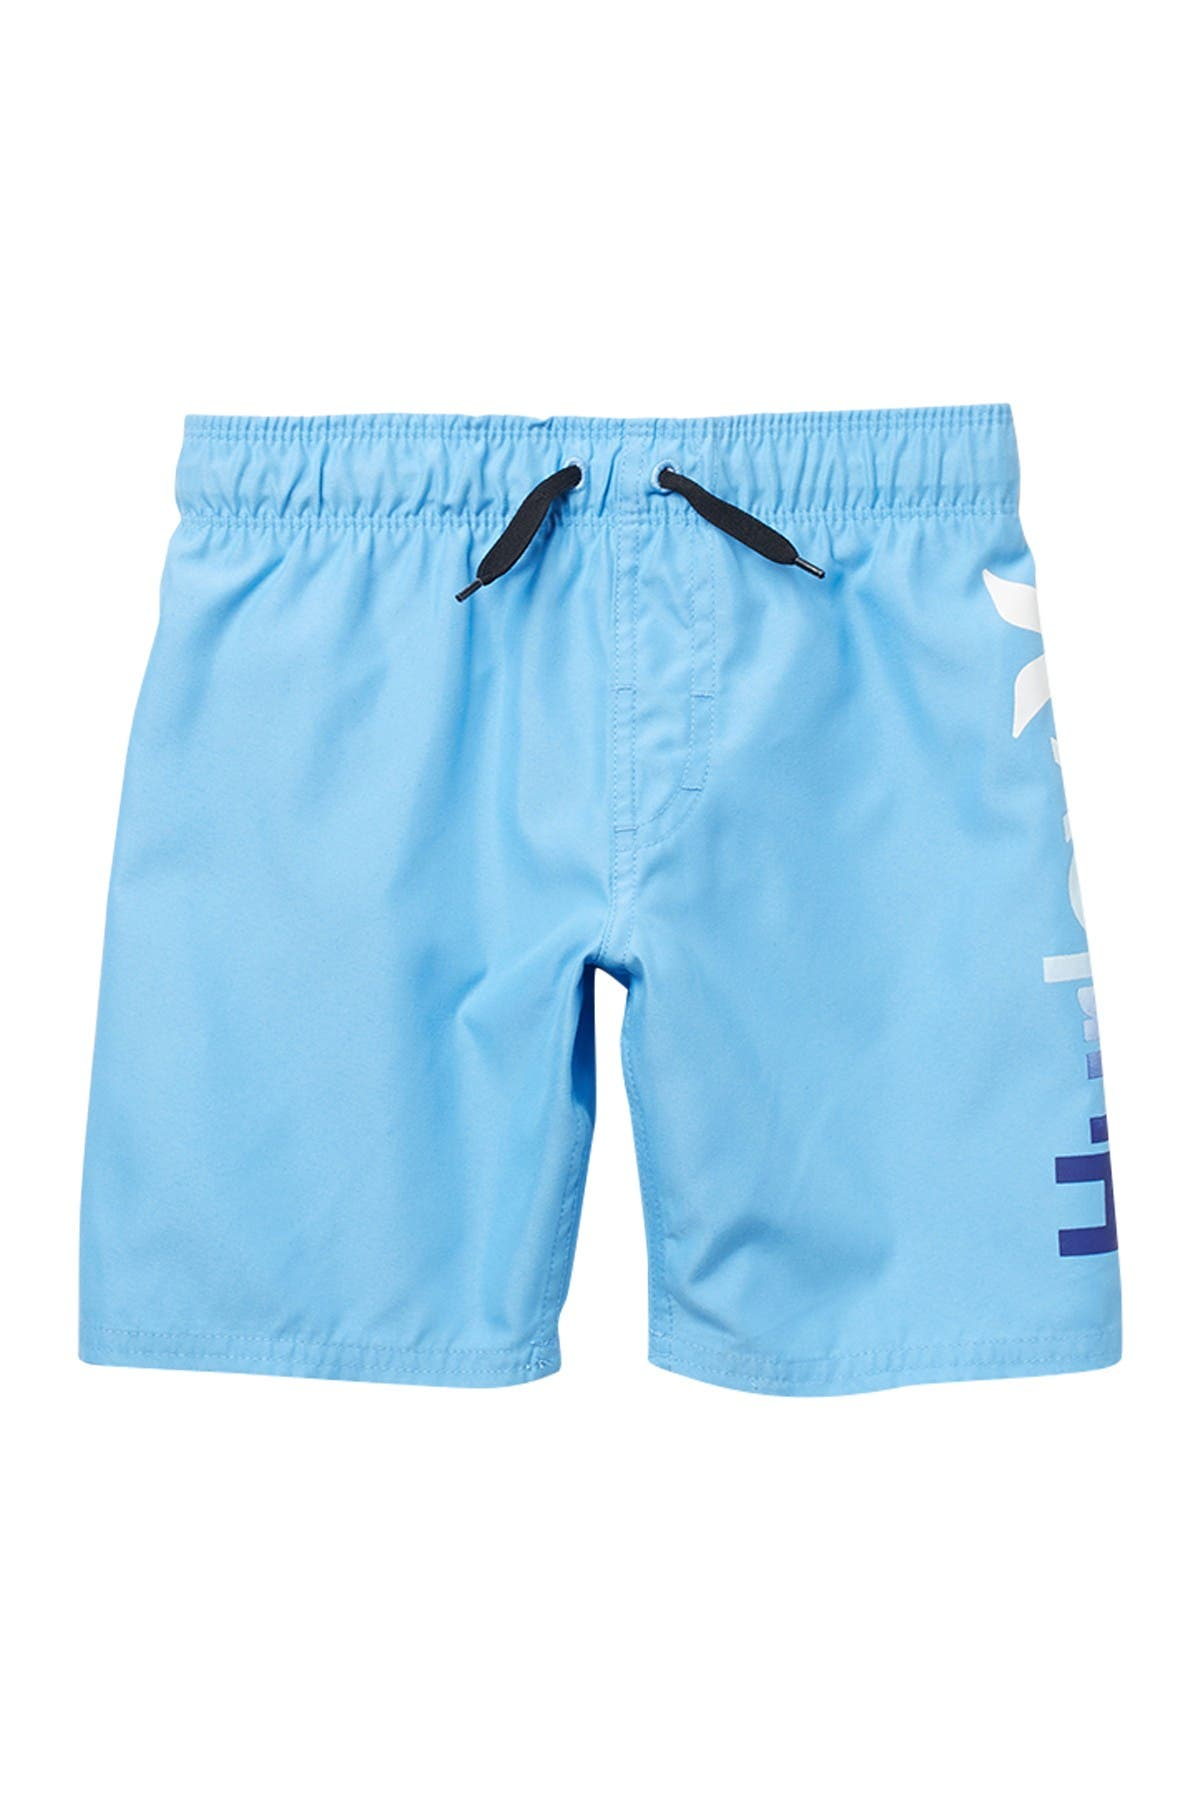 Image of Hurley One and Only Gradient Pull-On Shorts